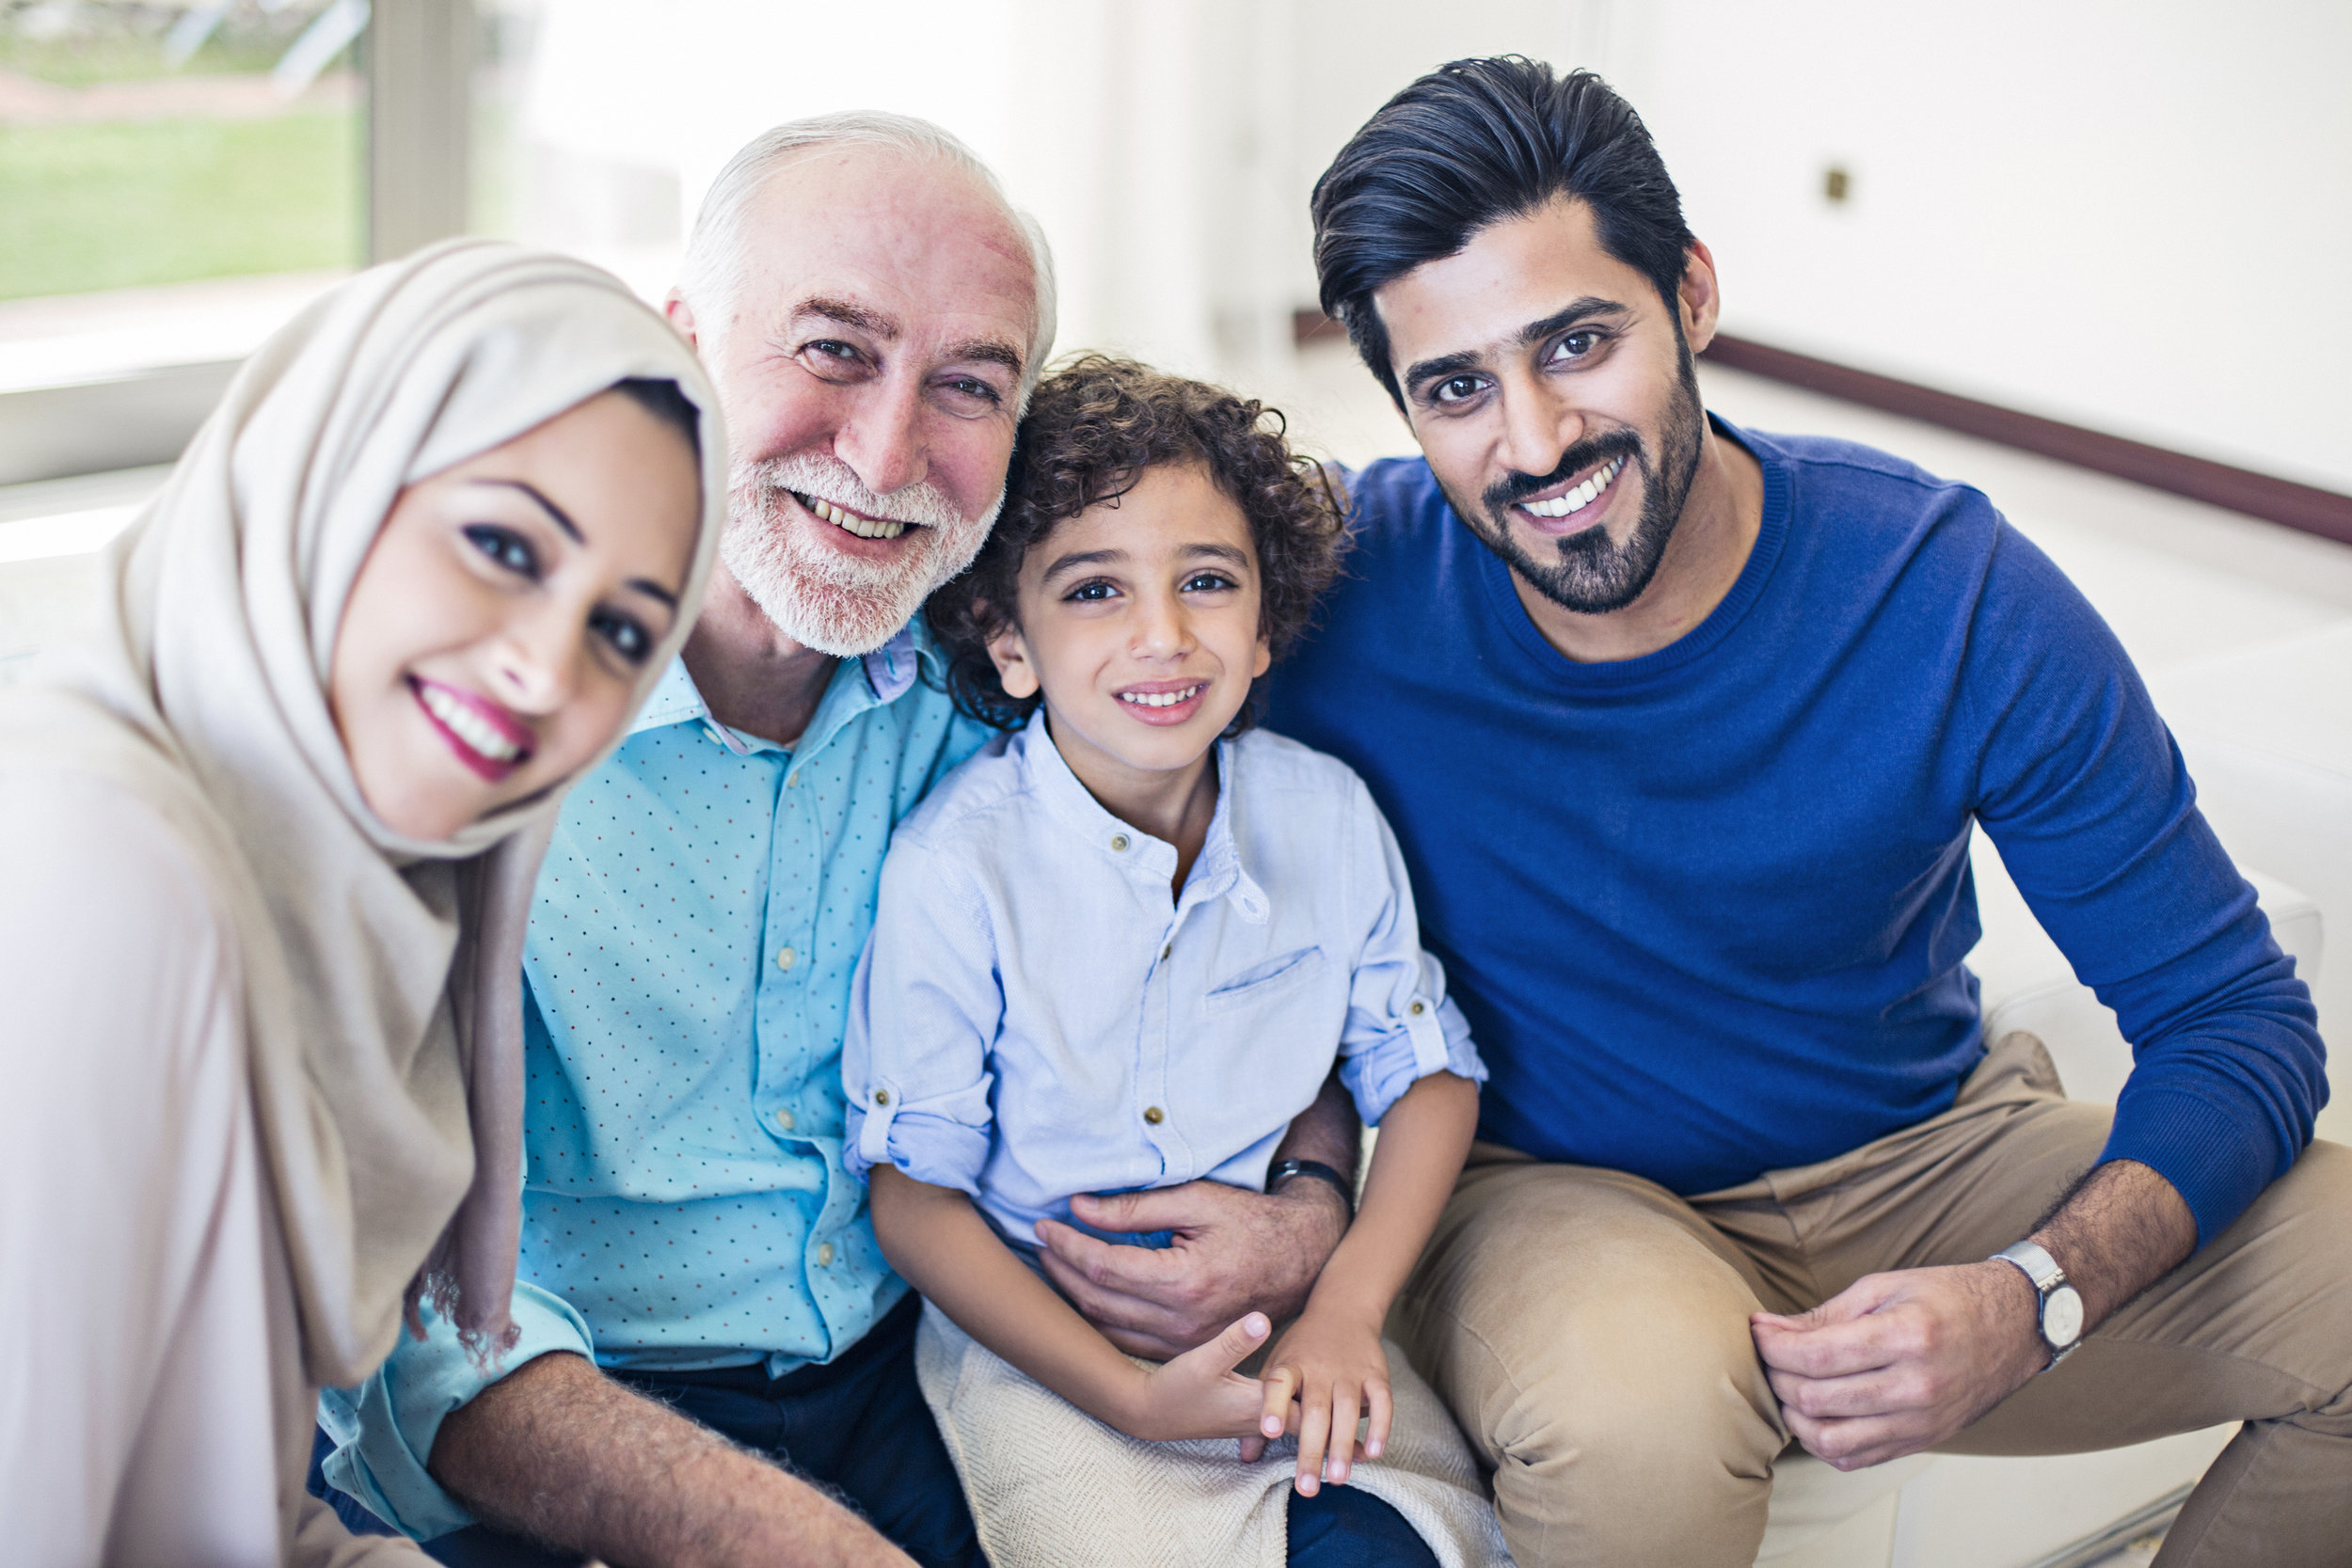 Happy Emirati Family - Stock image.jpg